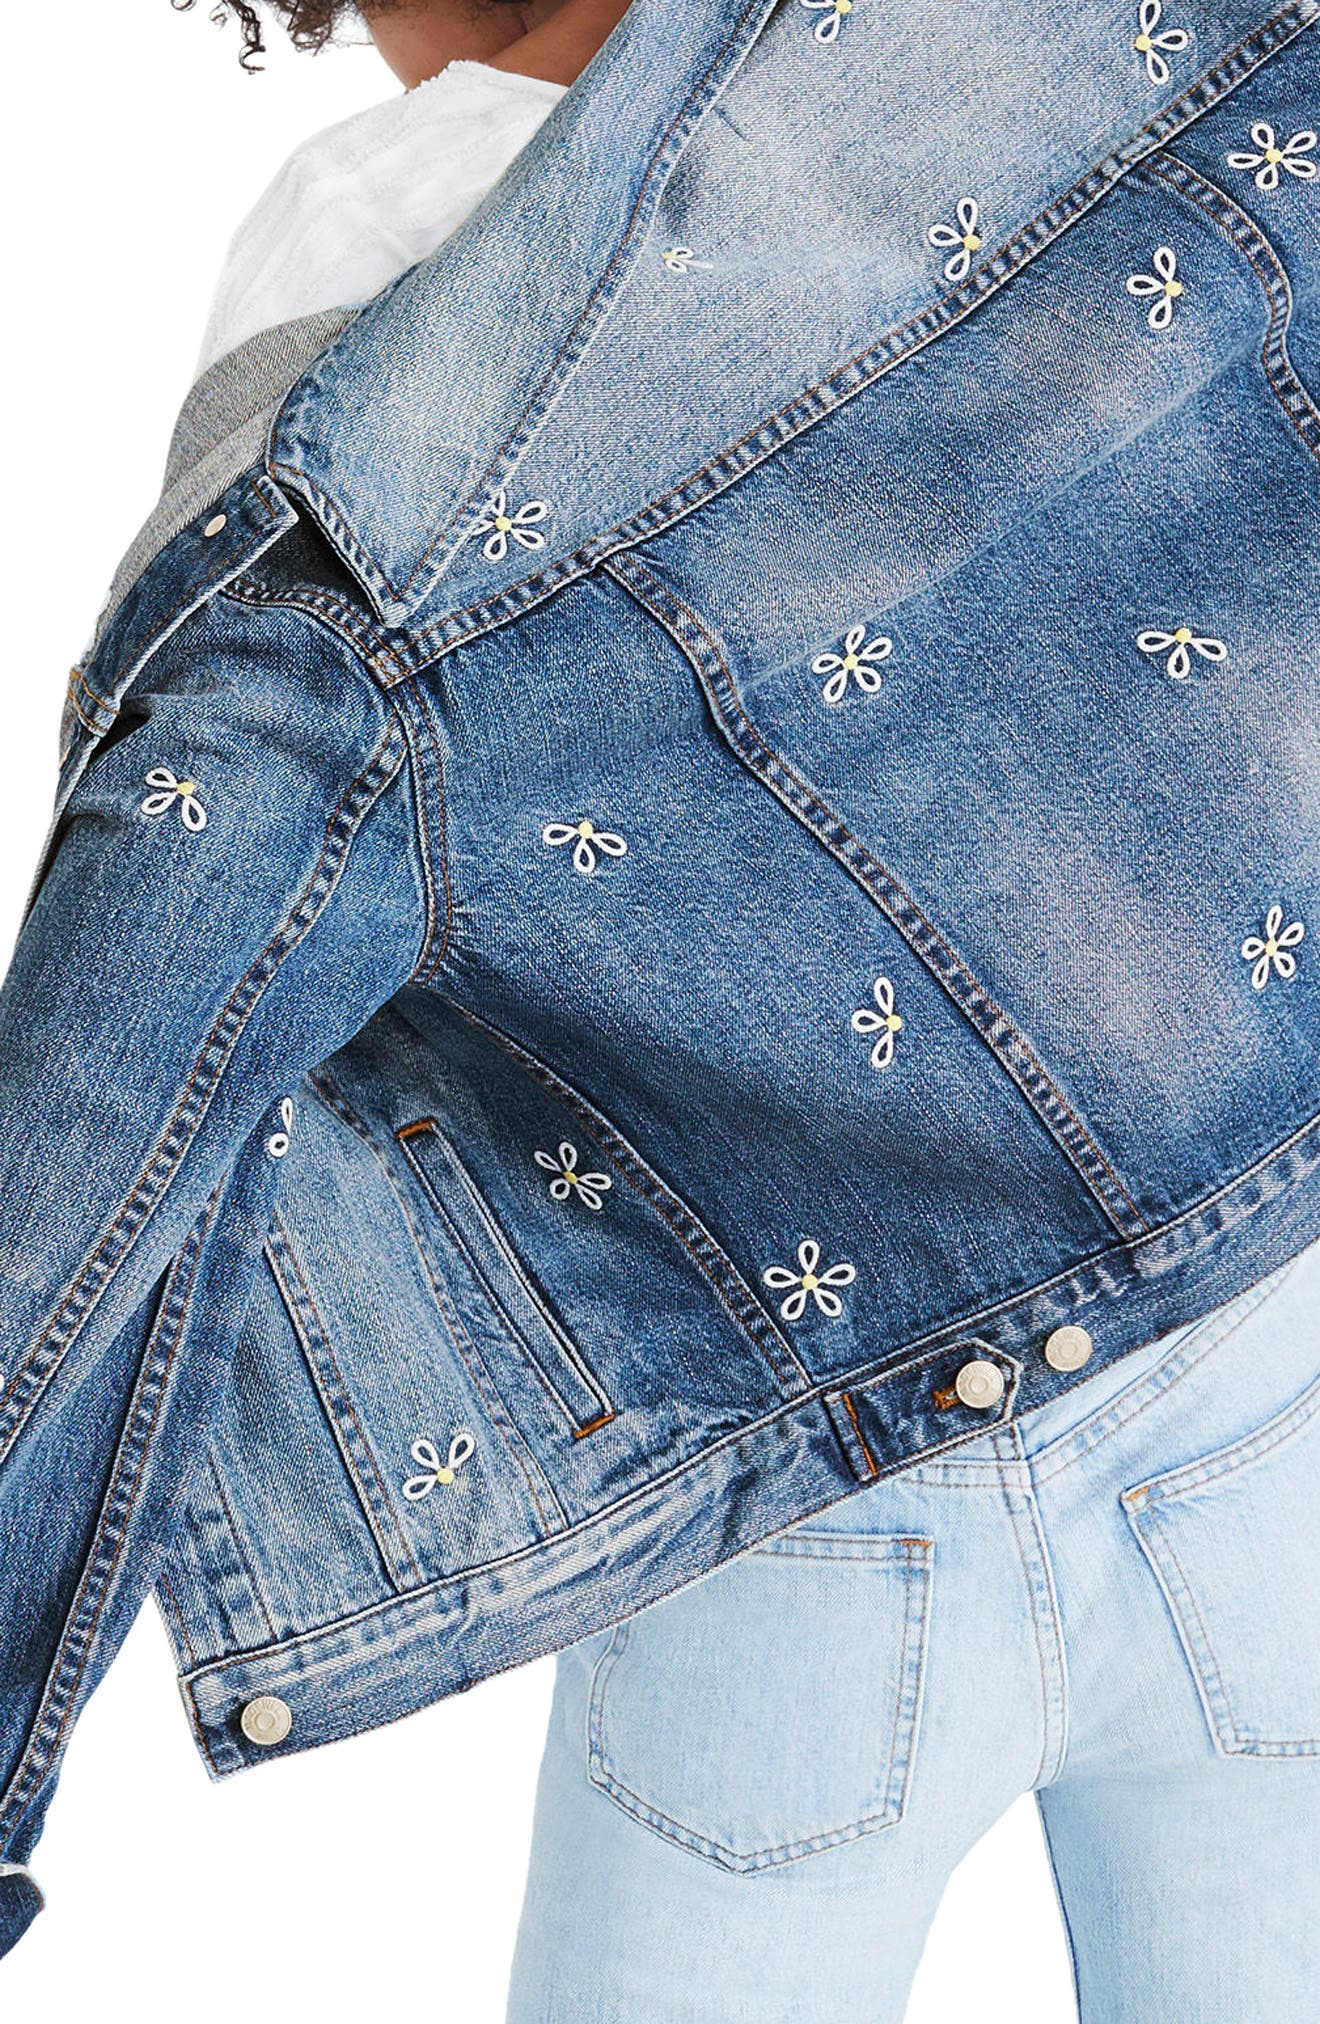 Daisy Embroidered Boxy Crop Denim Jacket,                             Alternate thumbnail 2, color,                             Brook Hill Wash